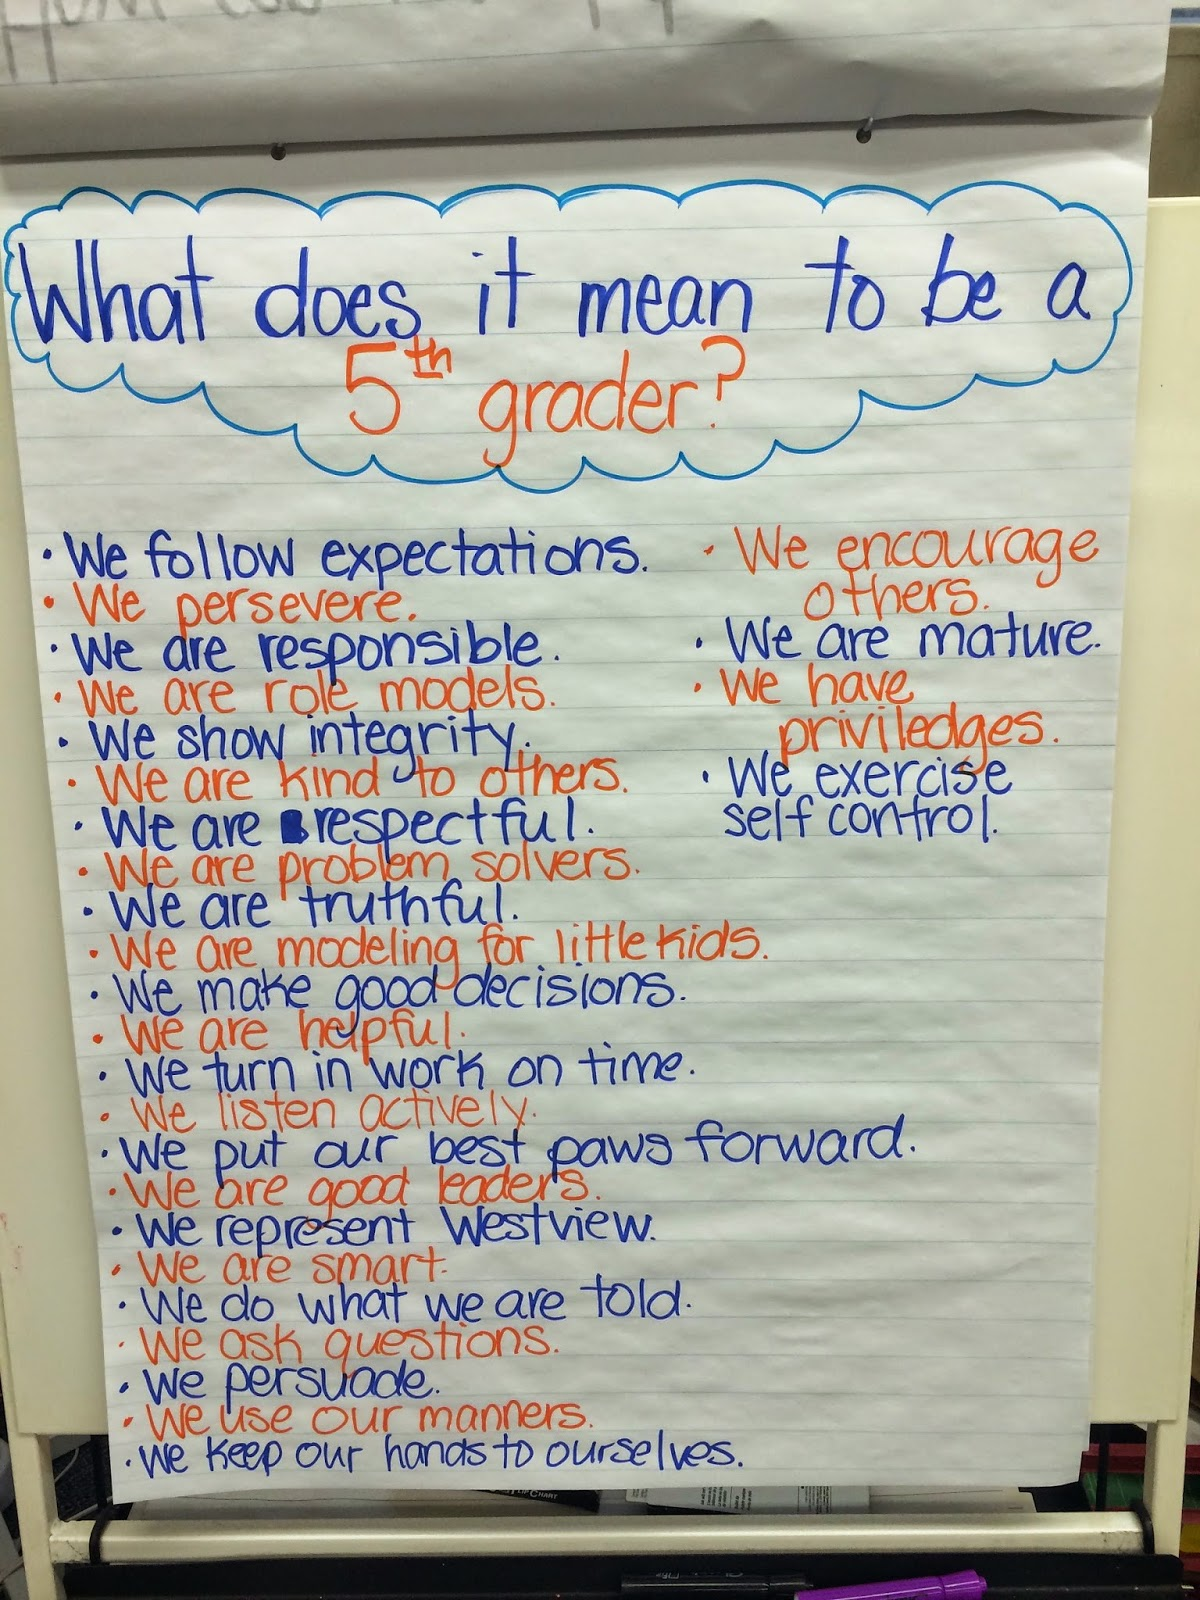 anchor chart of ideas: what does it mean to be a 5th grader?